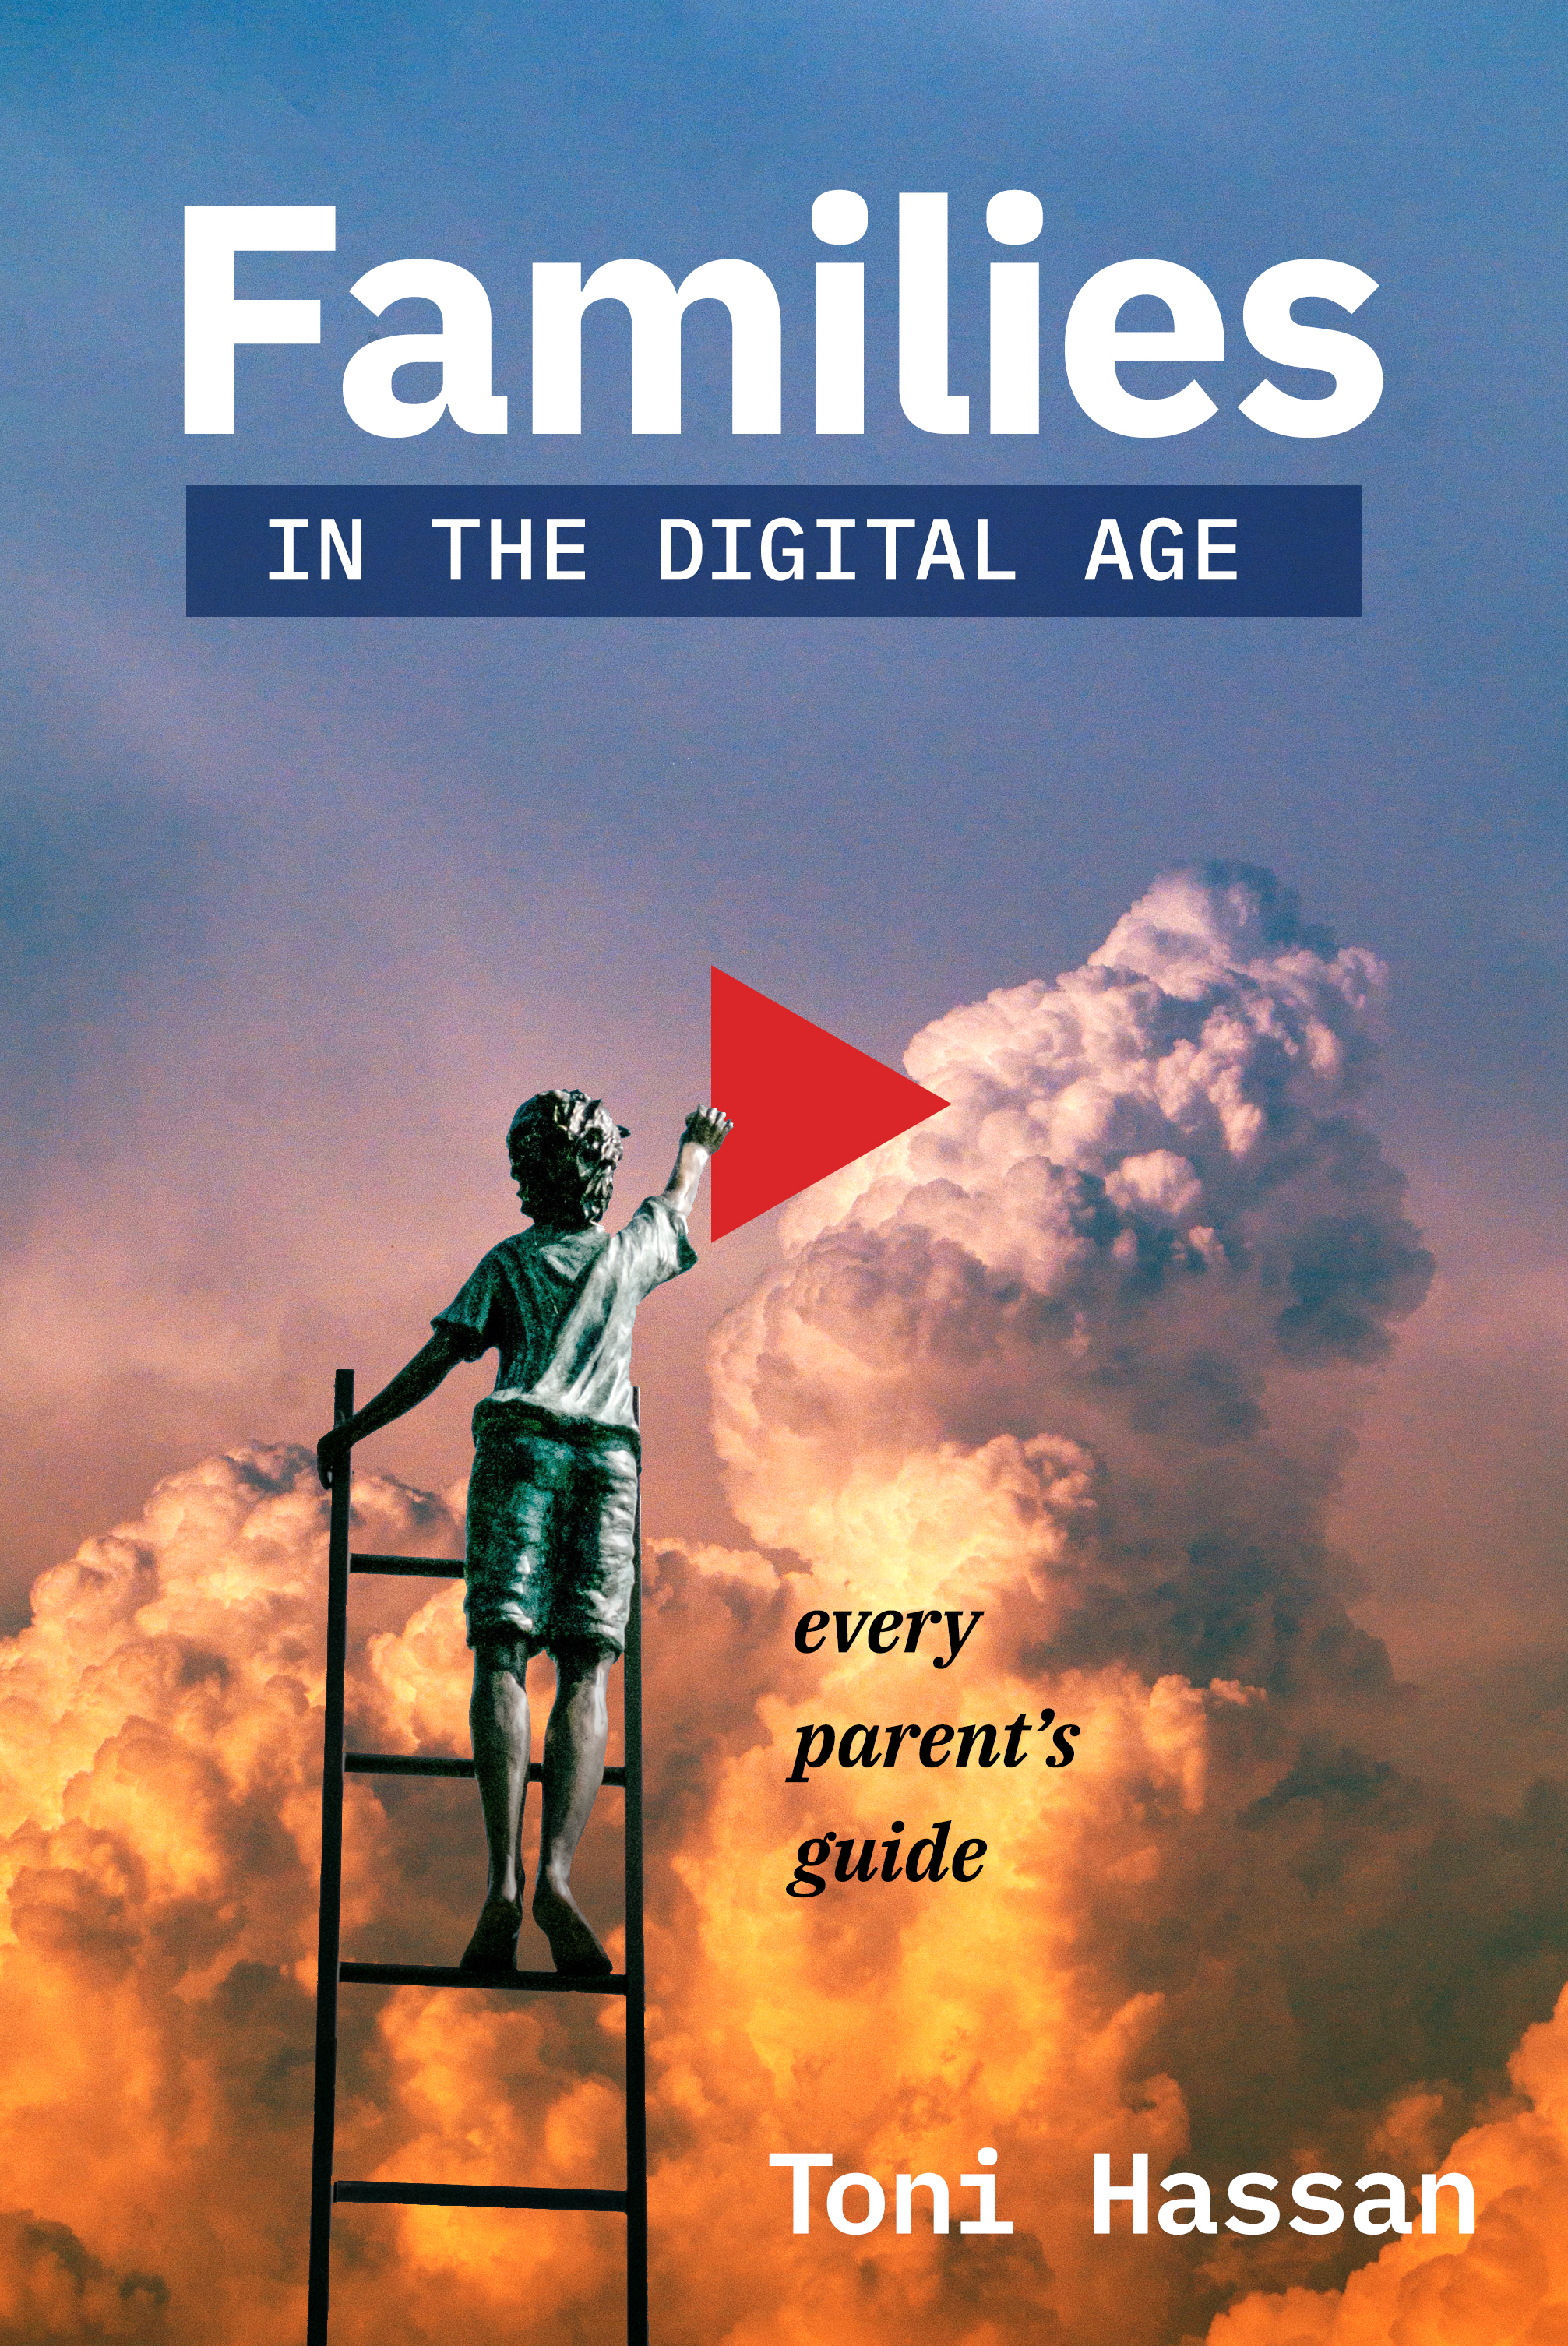 Families in the Digital Age_Cover 03.jpg